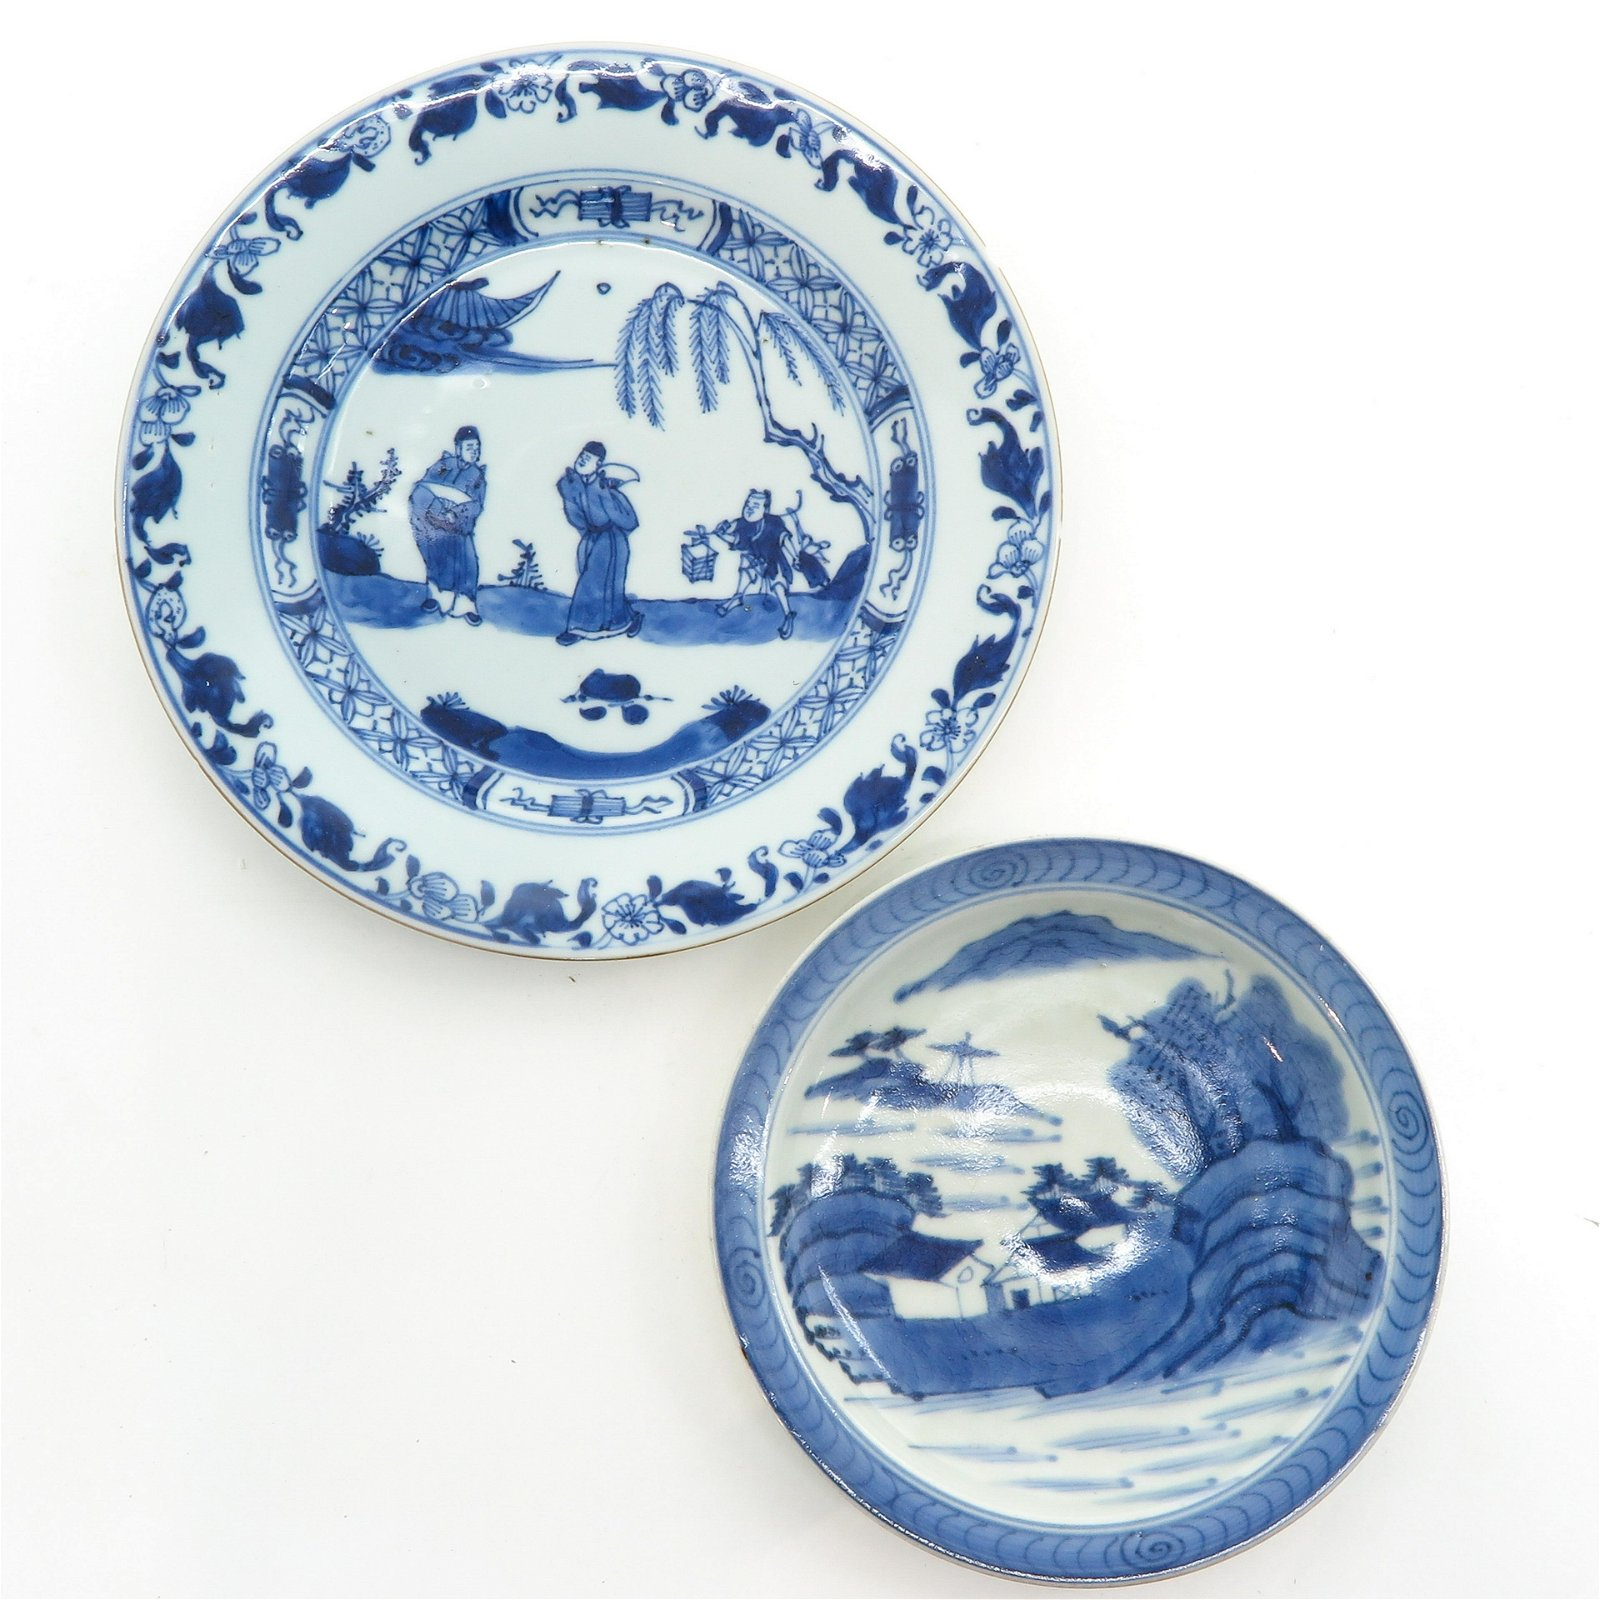 Two Blue and White Decor Plates